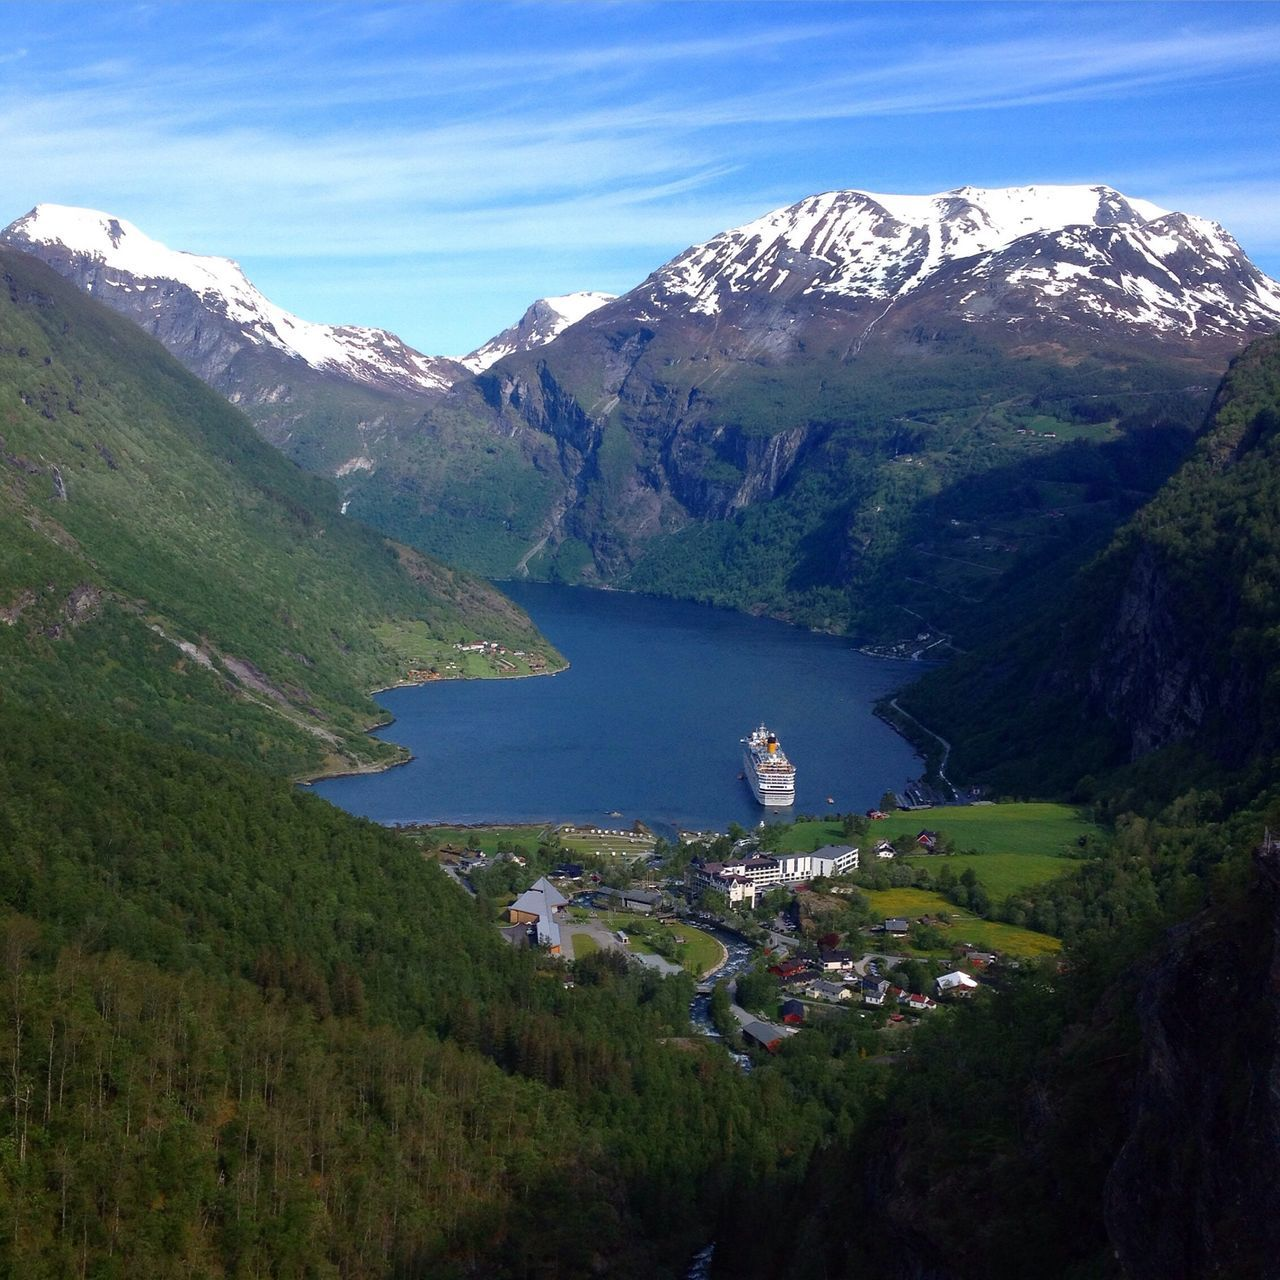 Fjord Norway Landscape View Traveling Travel Travel Photography Wanderlust Exploring Visiting